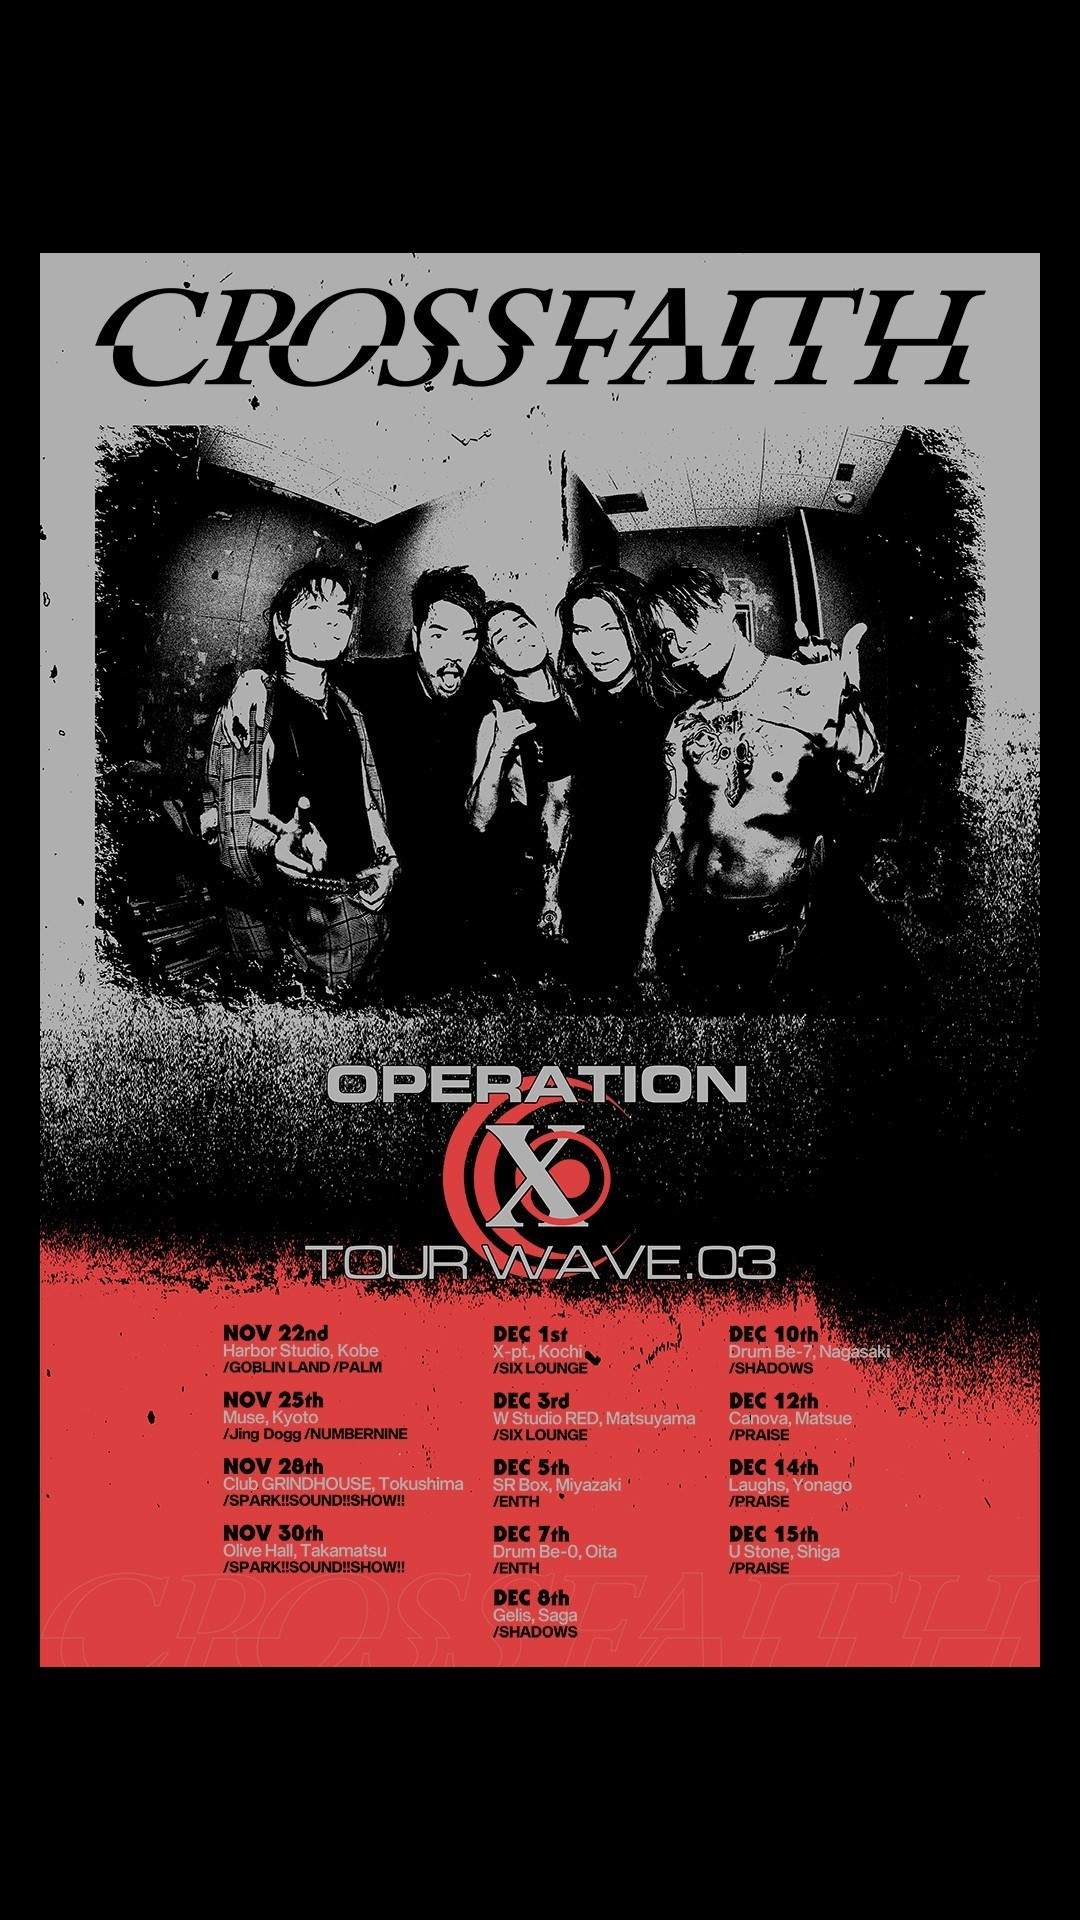 Crossfaith Operation X Tour Wave 03 高松 愛媛公演へ出演決定 Six Lounge Official Site